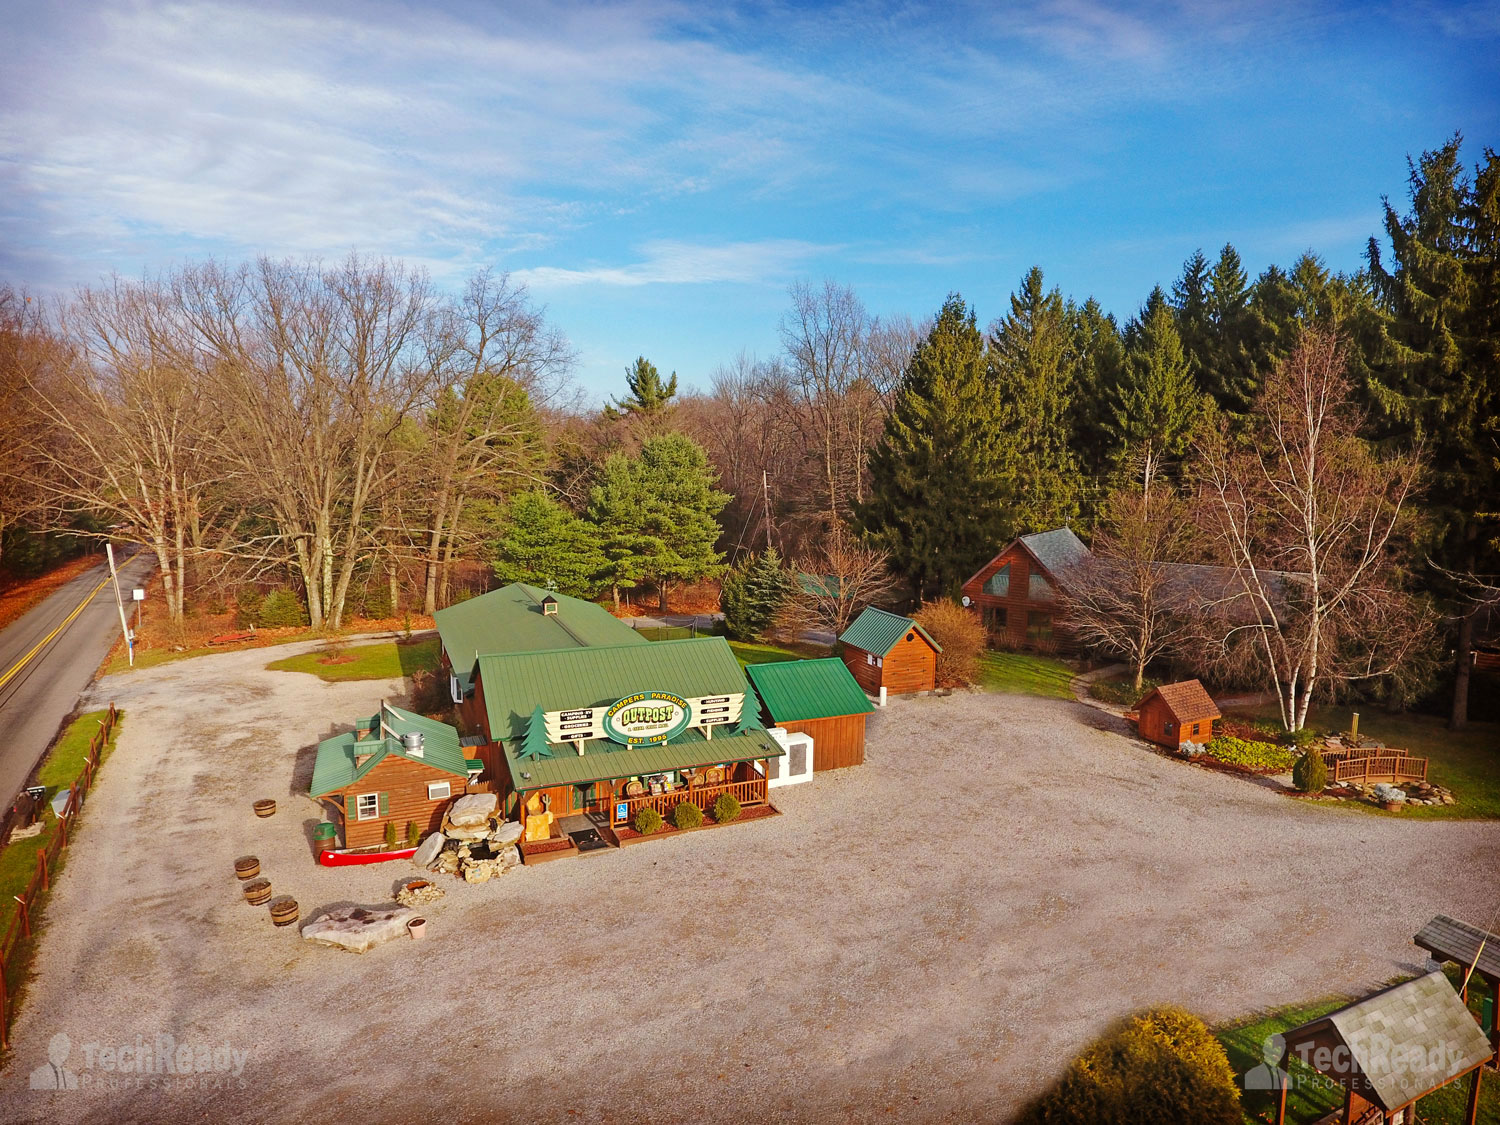 Campers Paradise Recognized As One Of The Most Beautiful Campgrounds In Pa